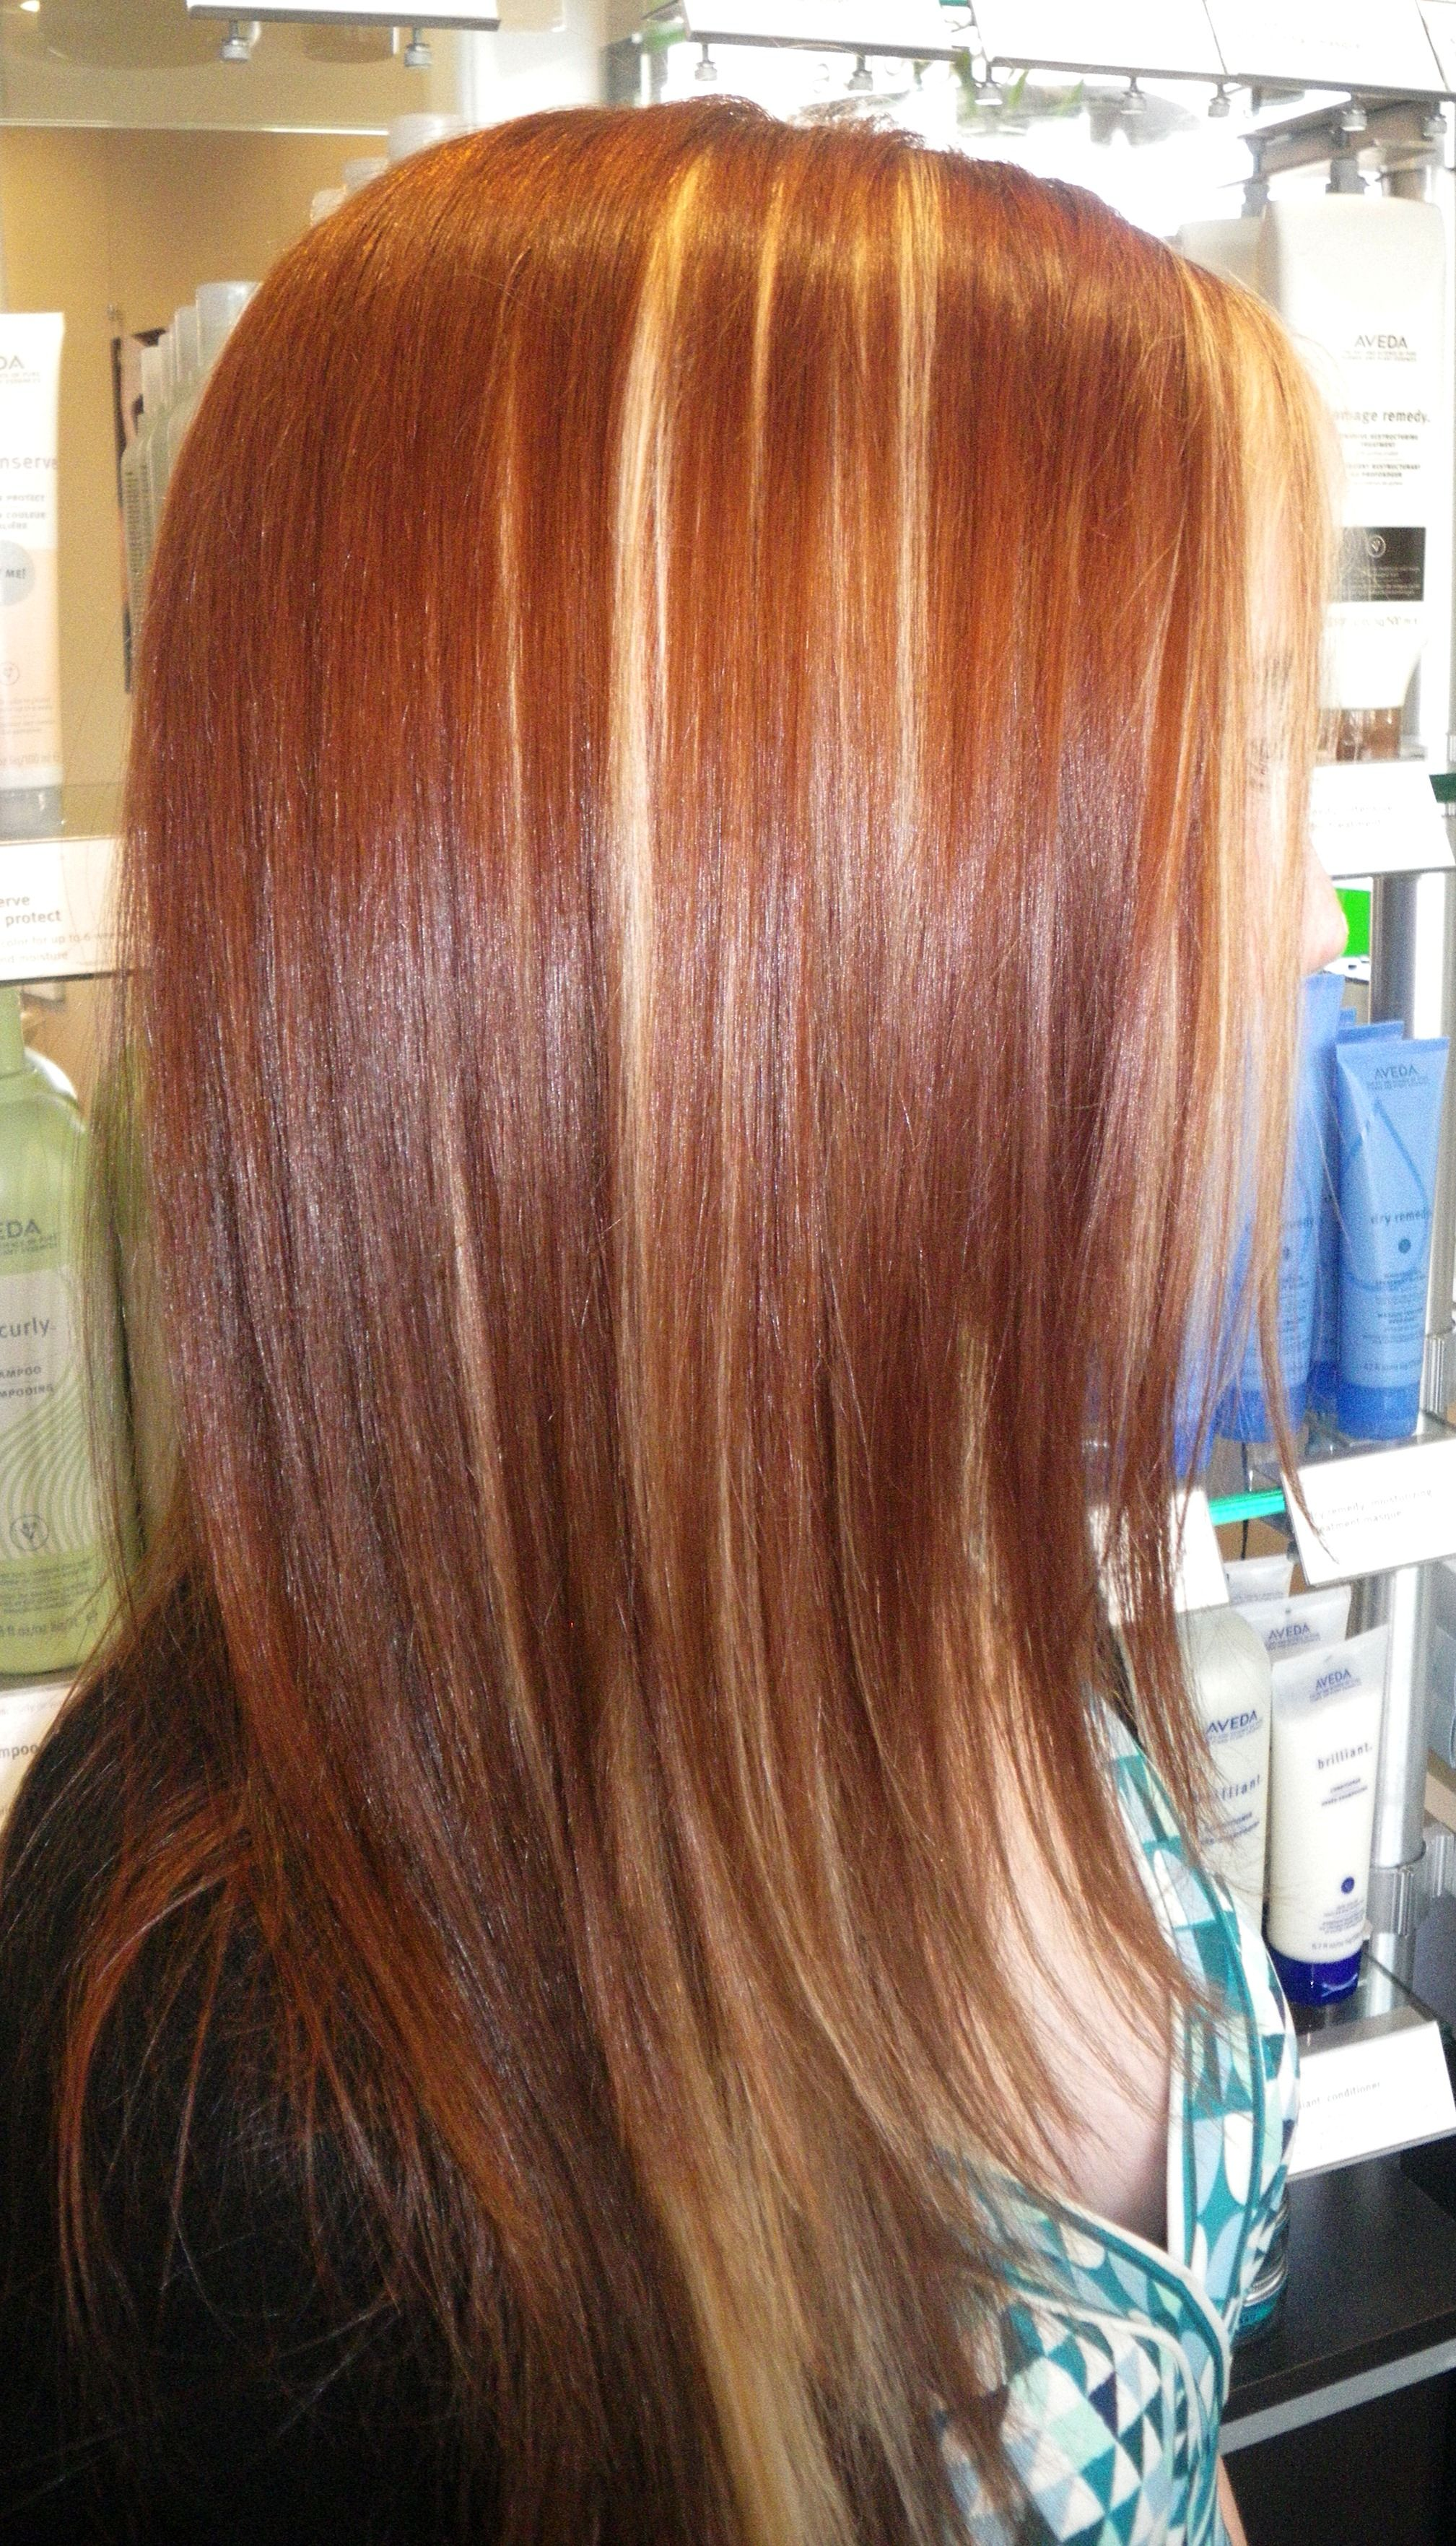 Bright Aveda Red With Peek A Boo Highlighting Through The